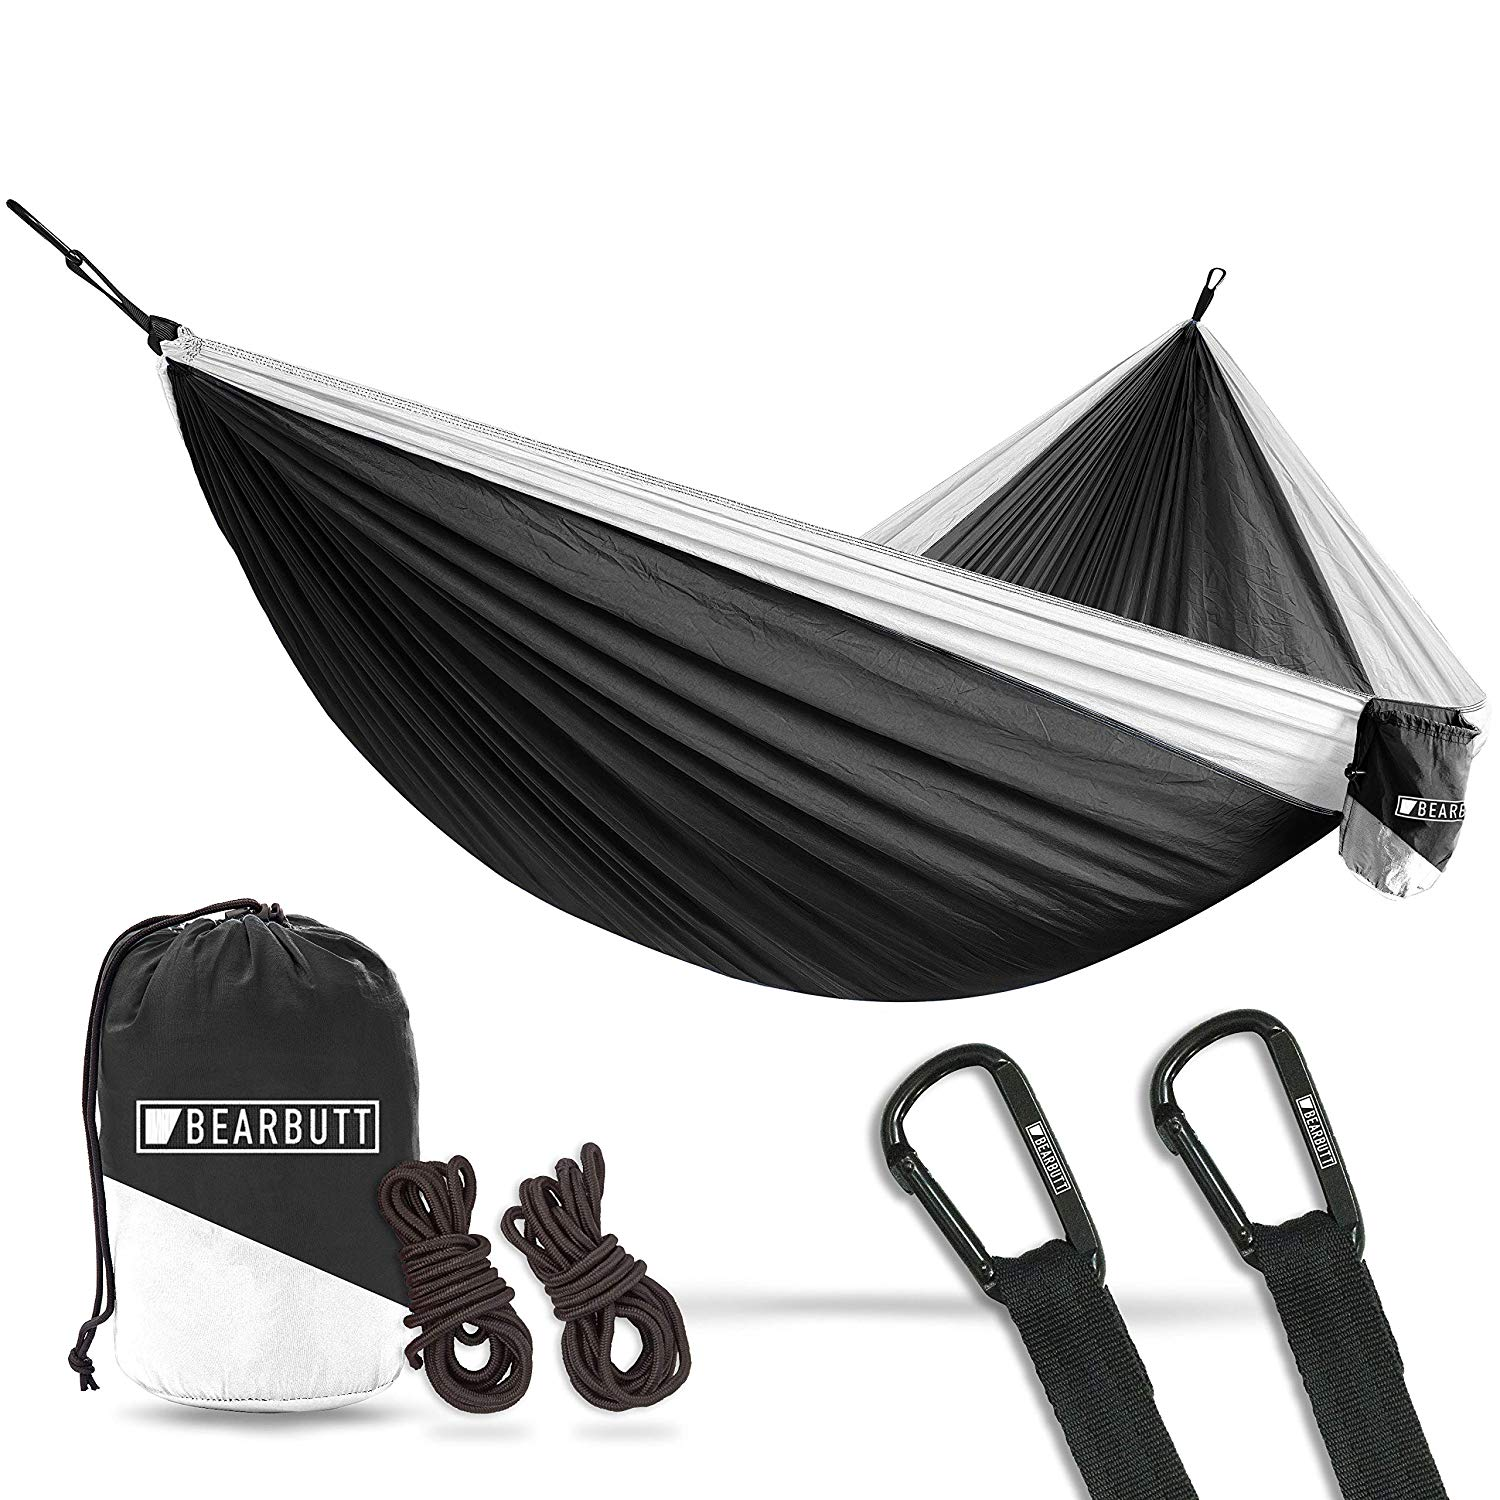 Top 10 Best Hammock Underquilts For The Money 2021 Reviews 10